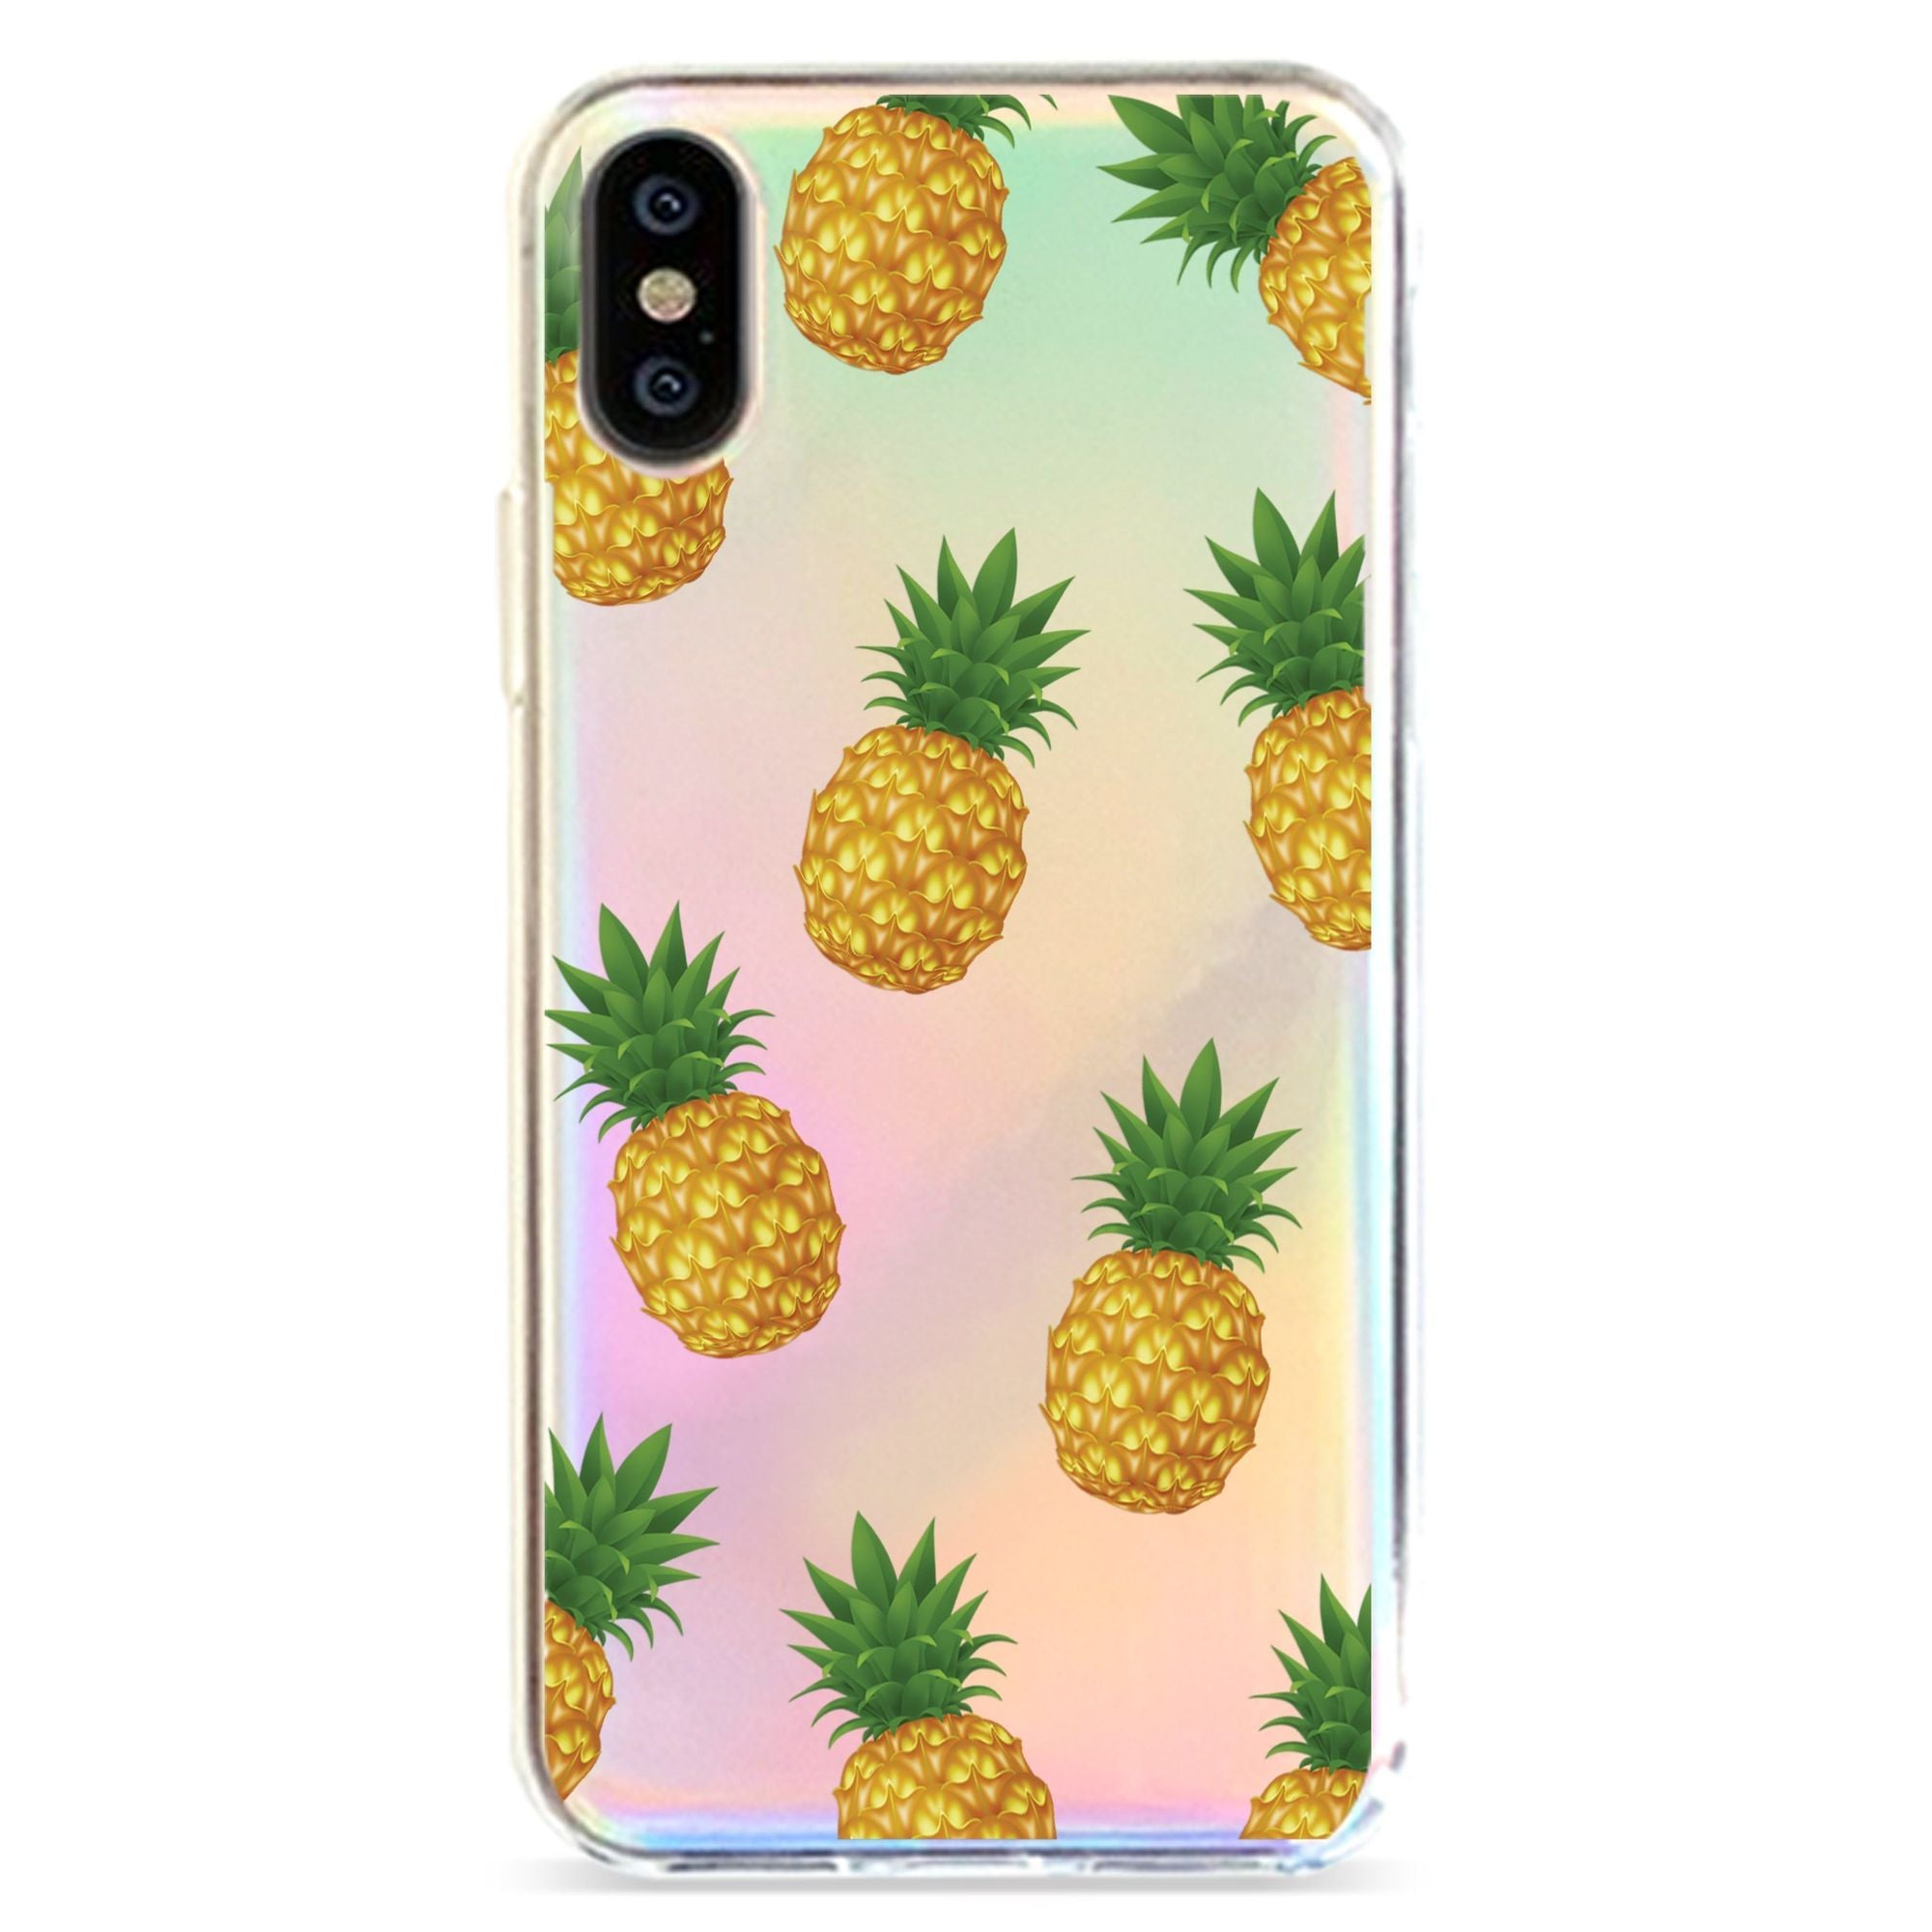 PINEAPPLE OVERLOAD - HOLOGRAPHIC IPHONE CASE